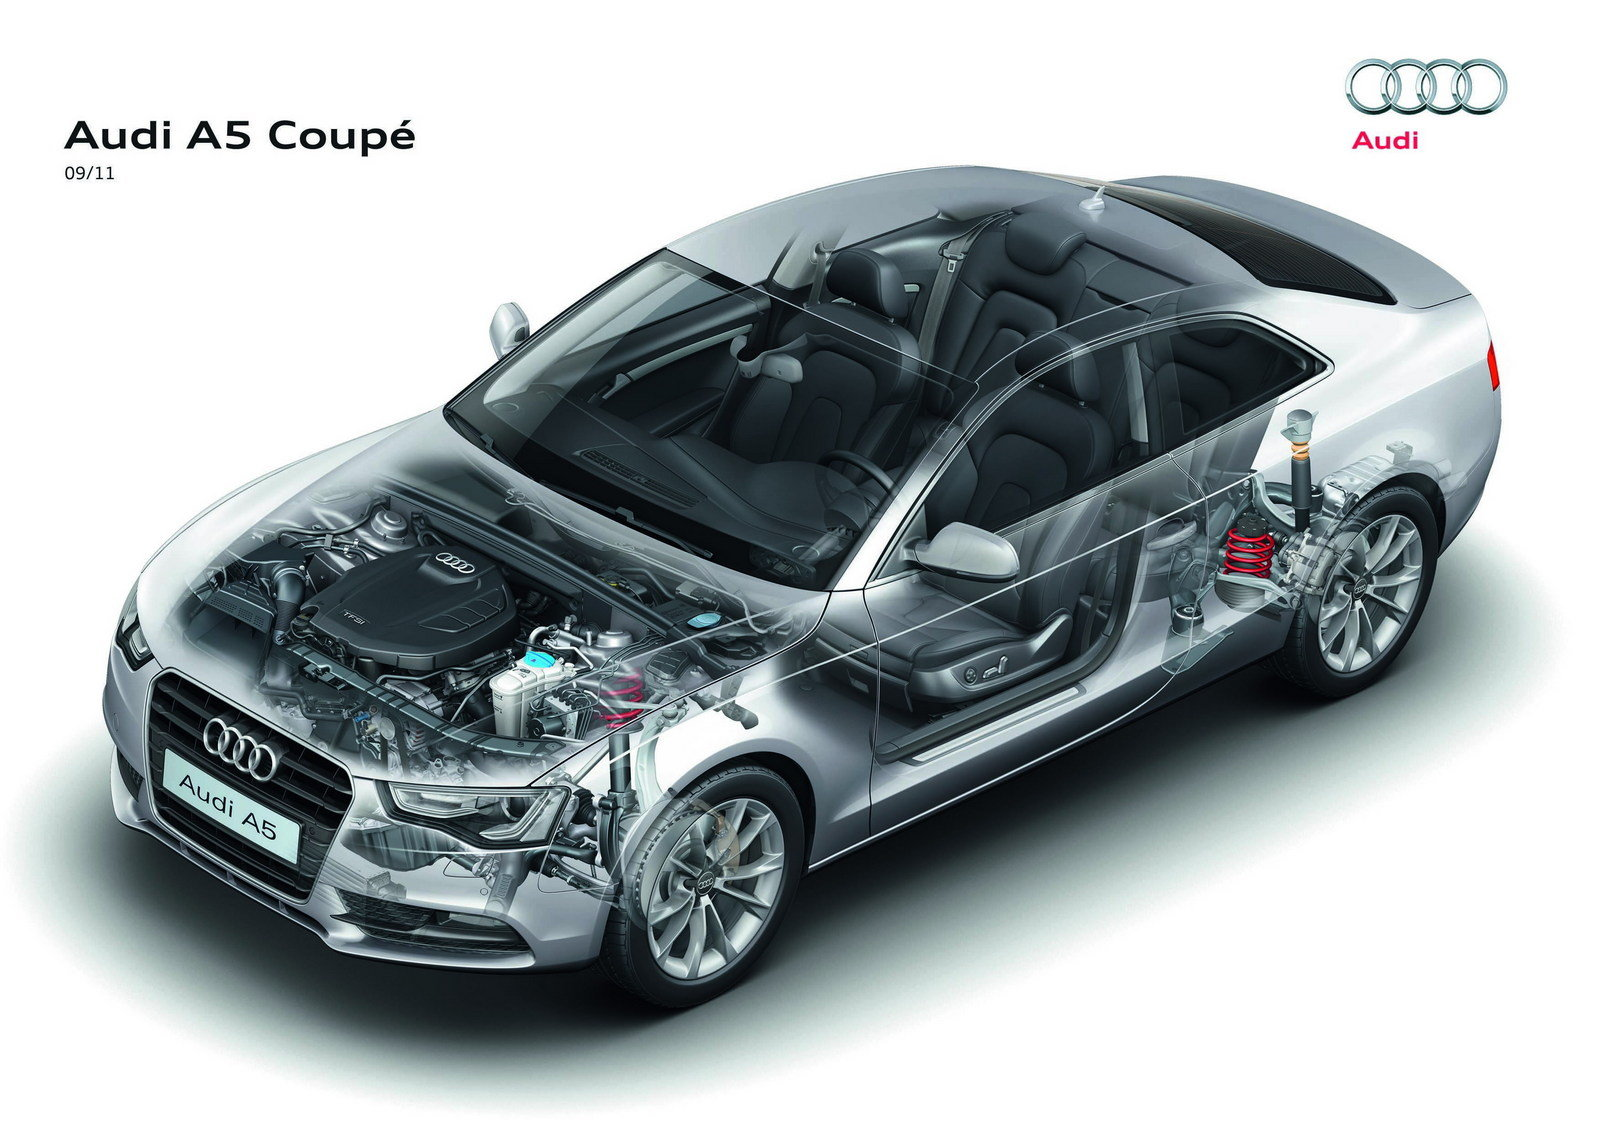 2014 2015 audi a5 coupe picture 511357 car review top speed. Black Bedroom Furniture Sets. Home Design Ideas